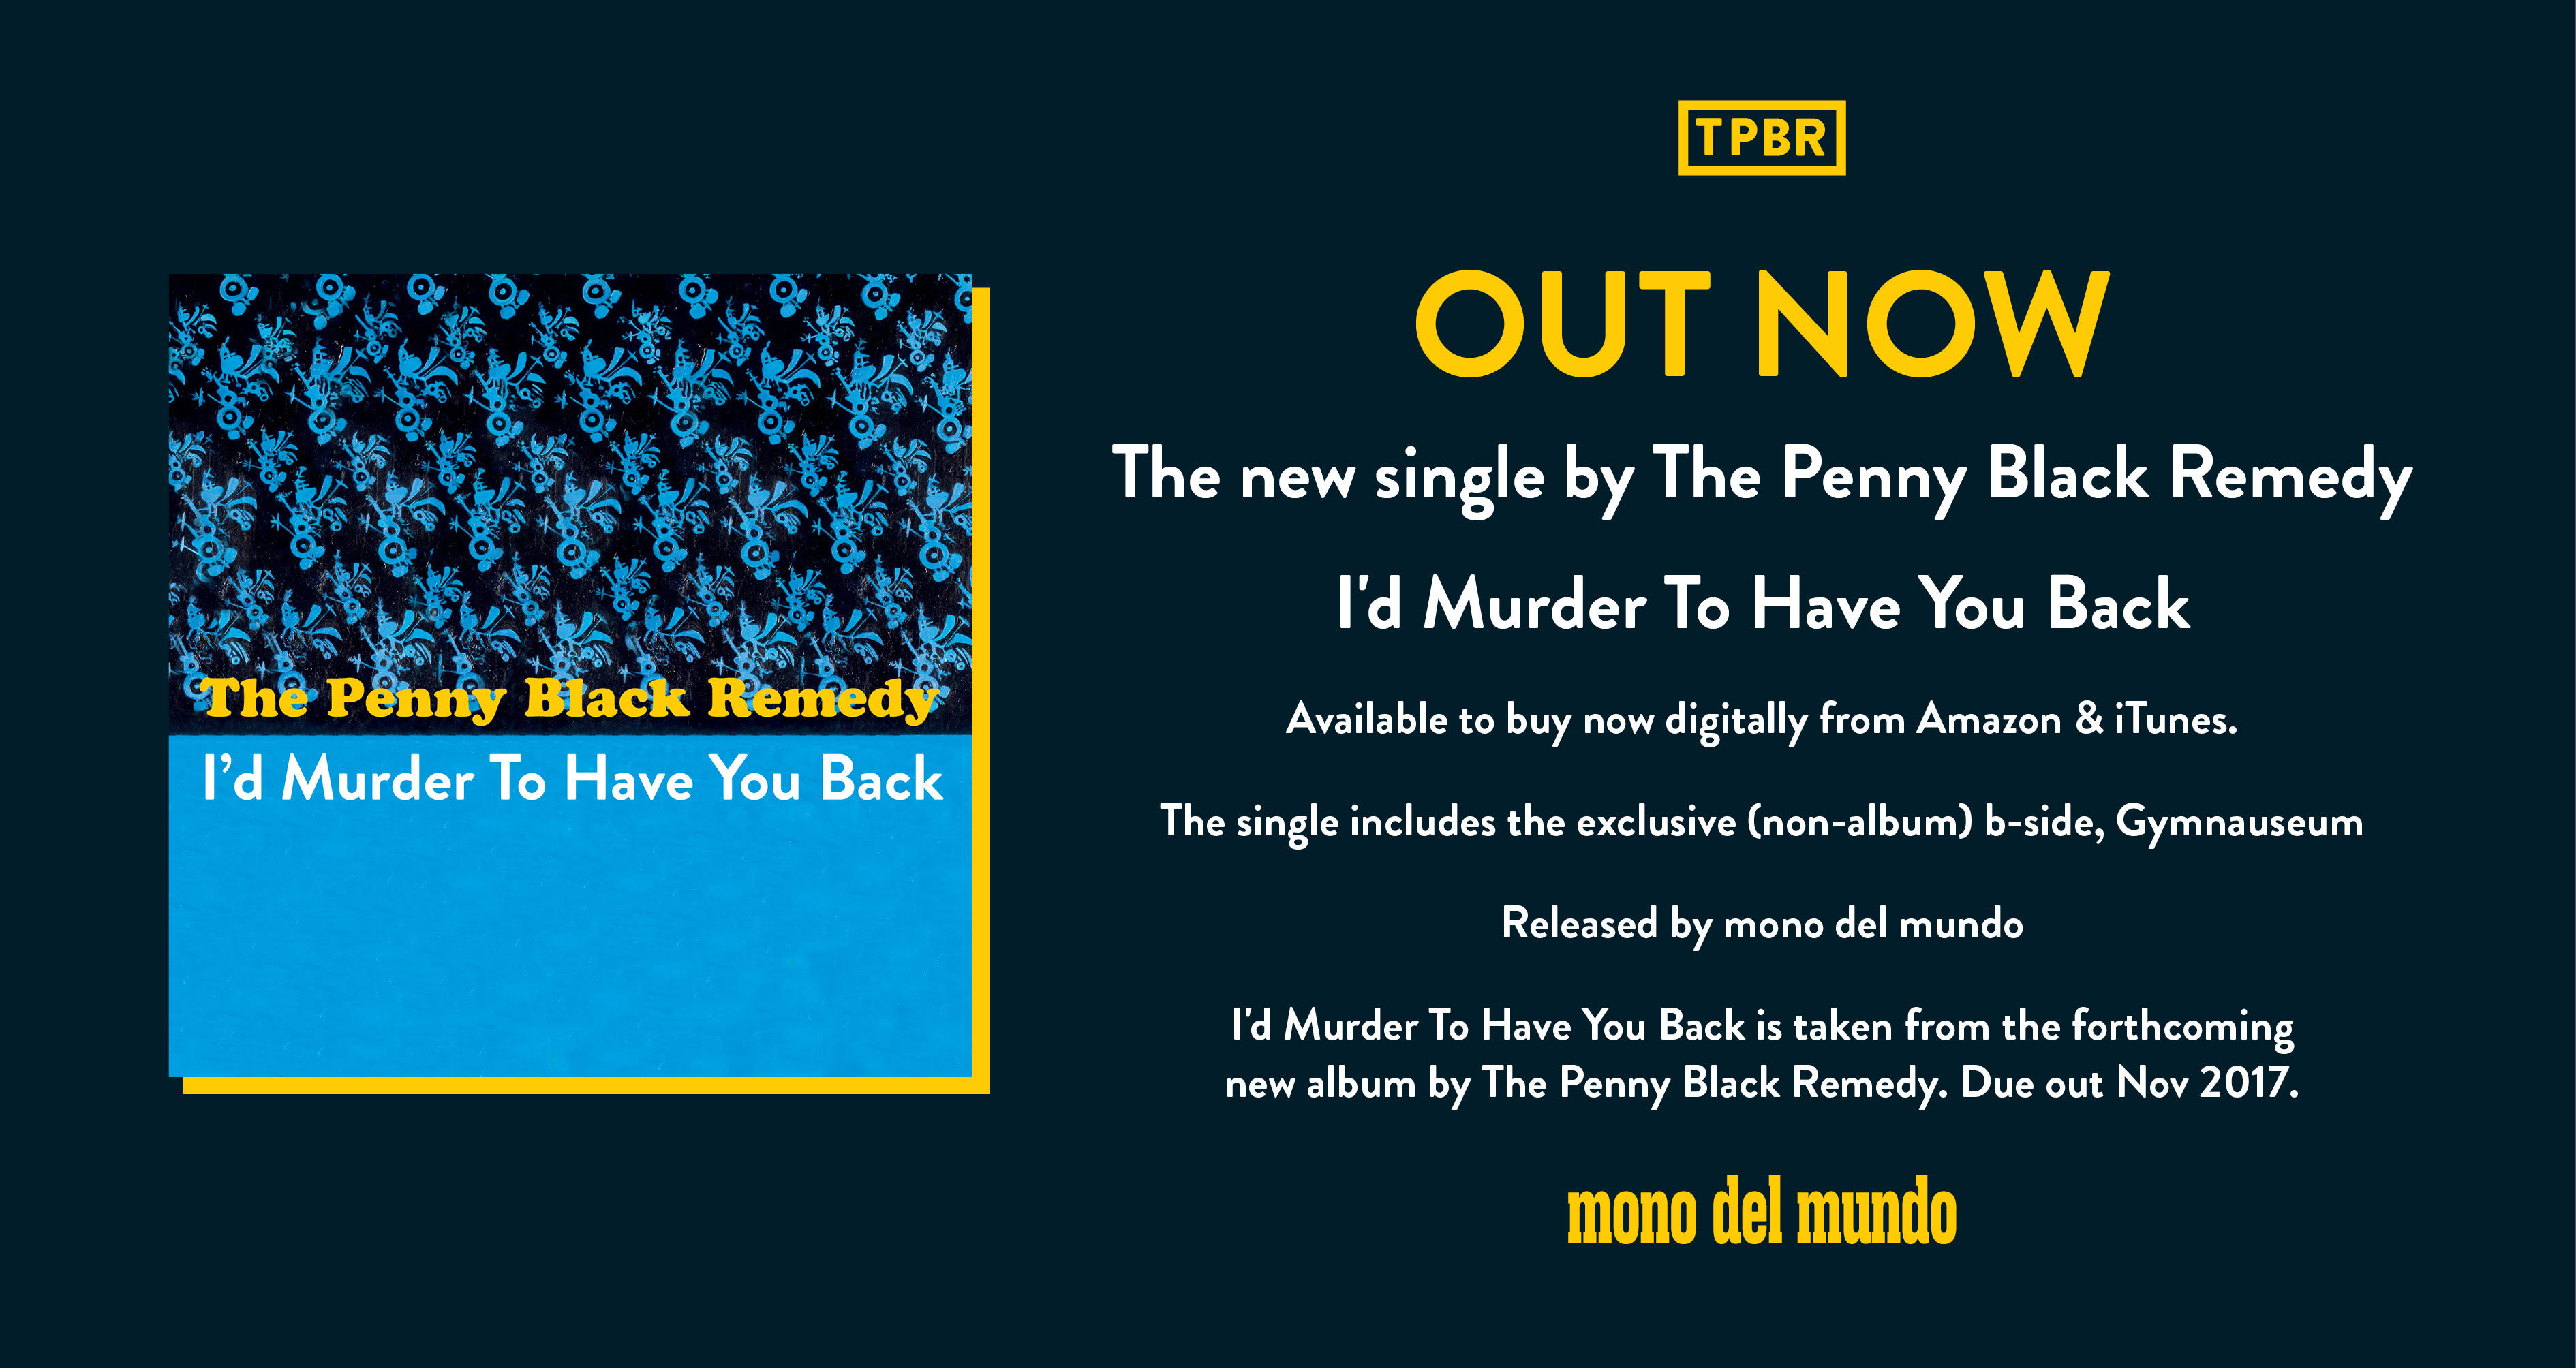 http://thepennyblackremedy.com/wp-content/uploads/2017/09/Murder-Single-Banner-OUT-NOW-Small-1.jpg